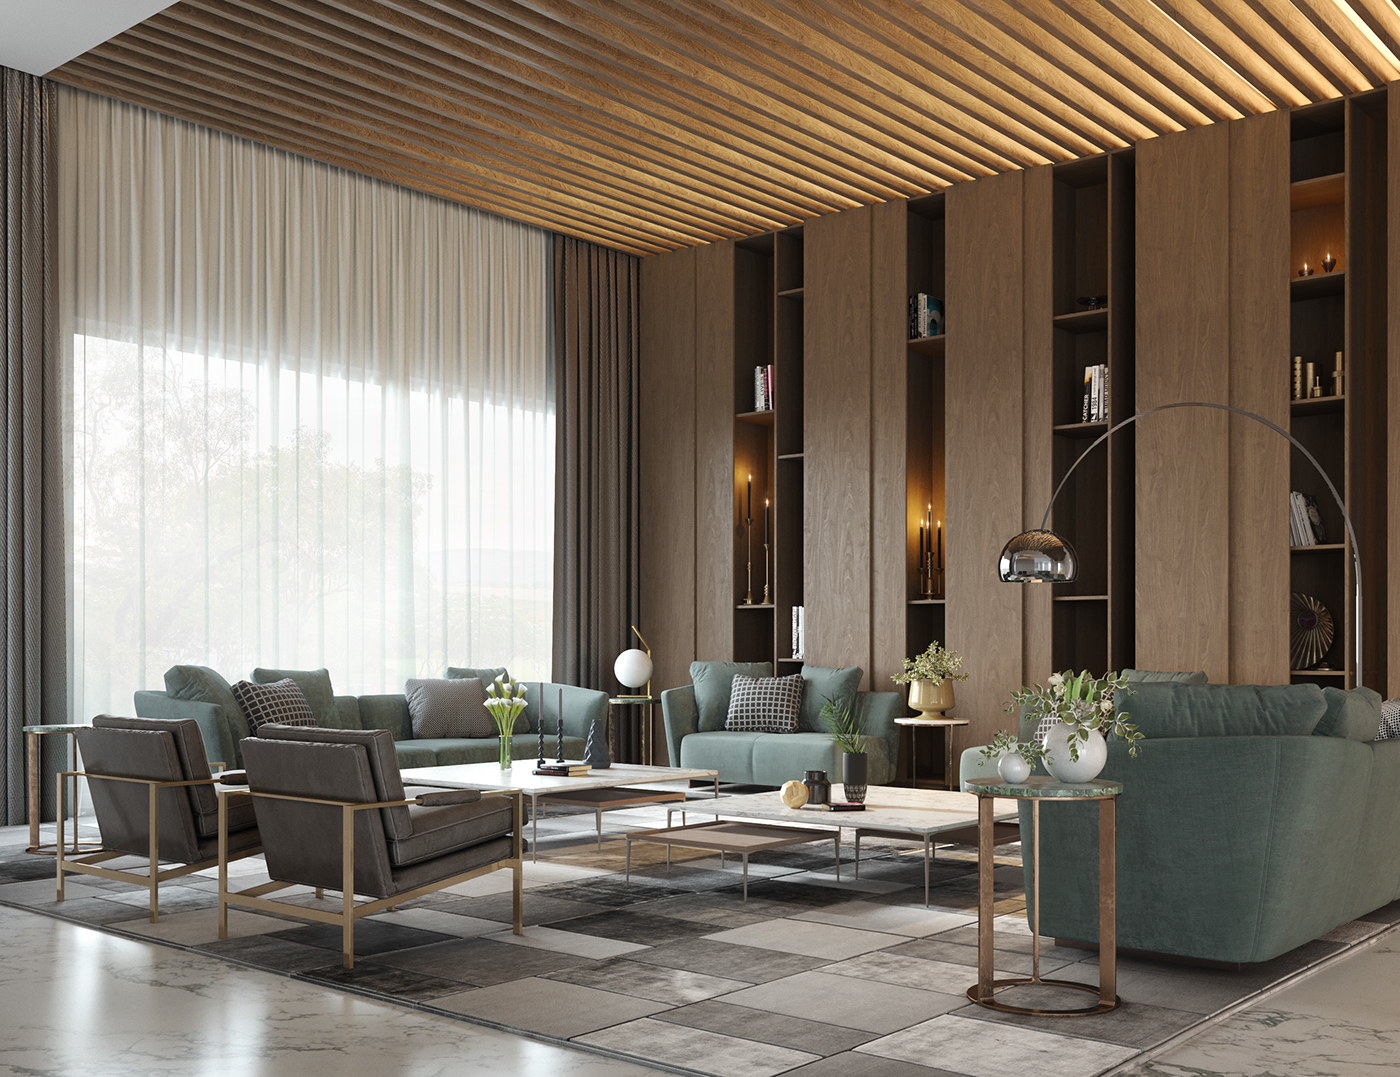 Apartments in saudi arabia part 2 on behance for Interior designs for apartments in hyderabad